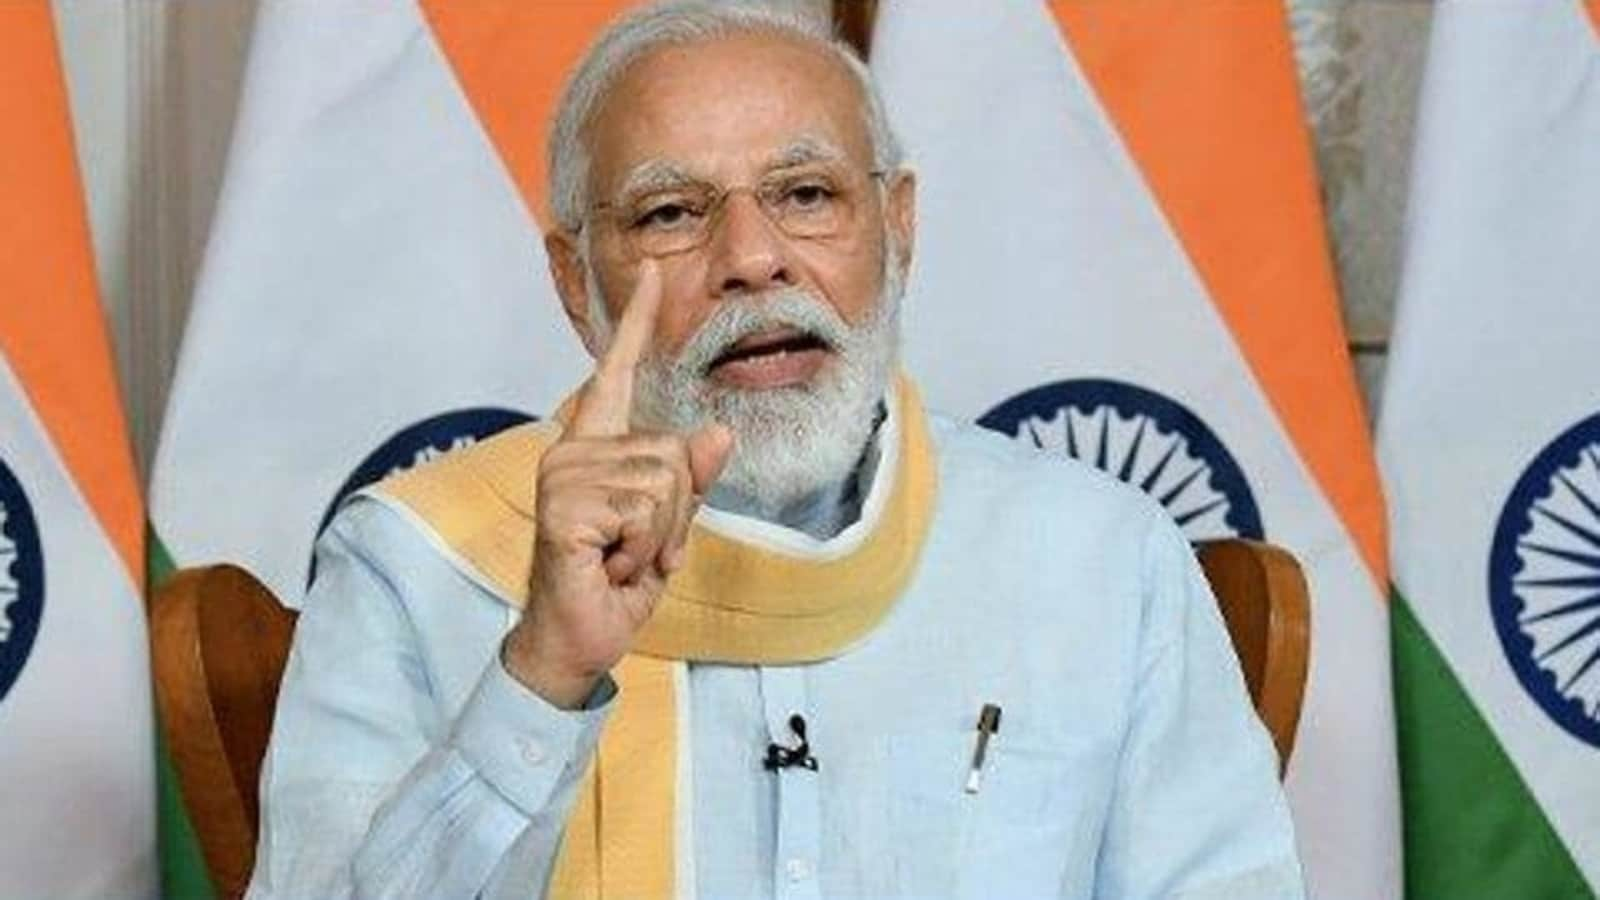 PM Modi to chair council of ministers meeting amid buzz around cabinet  expansion   Latest News India - Hindustan Times